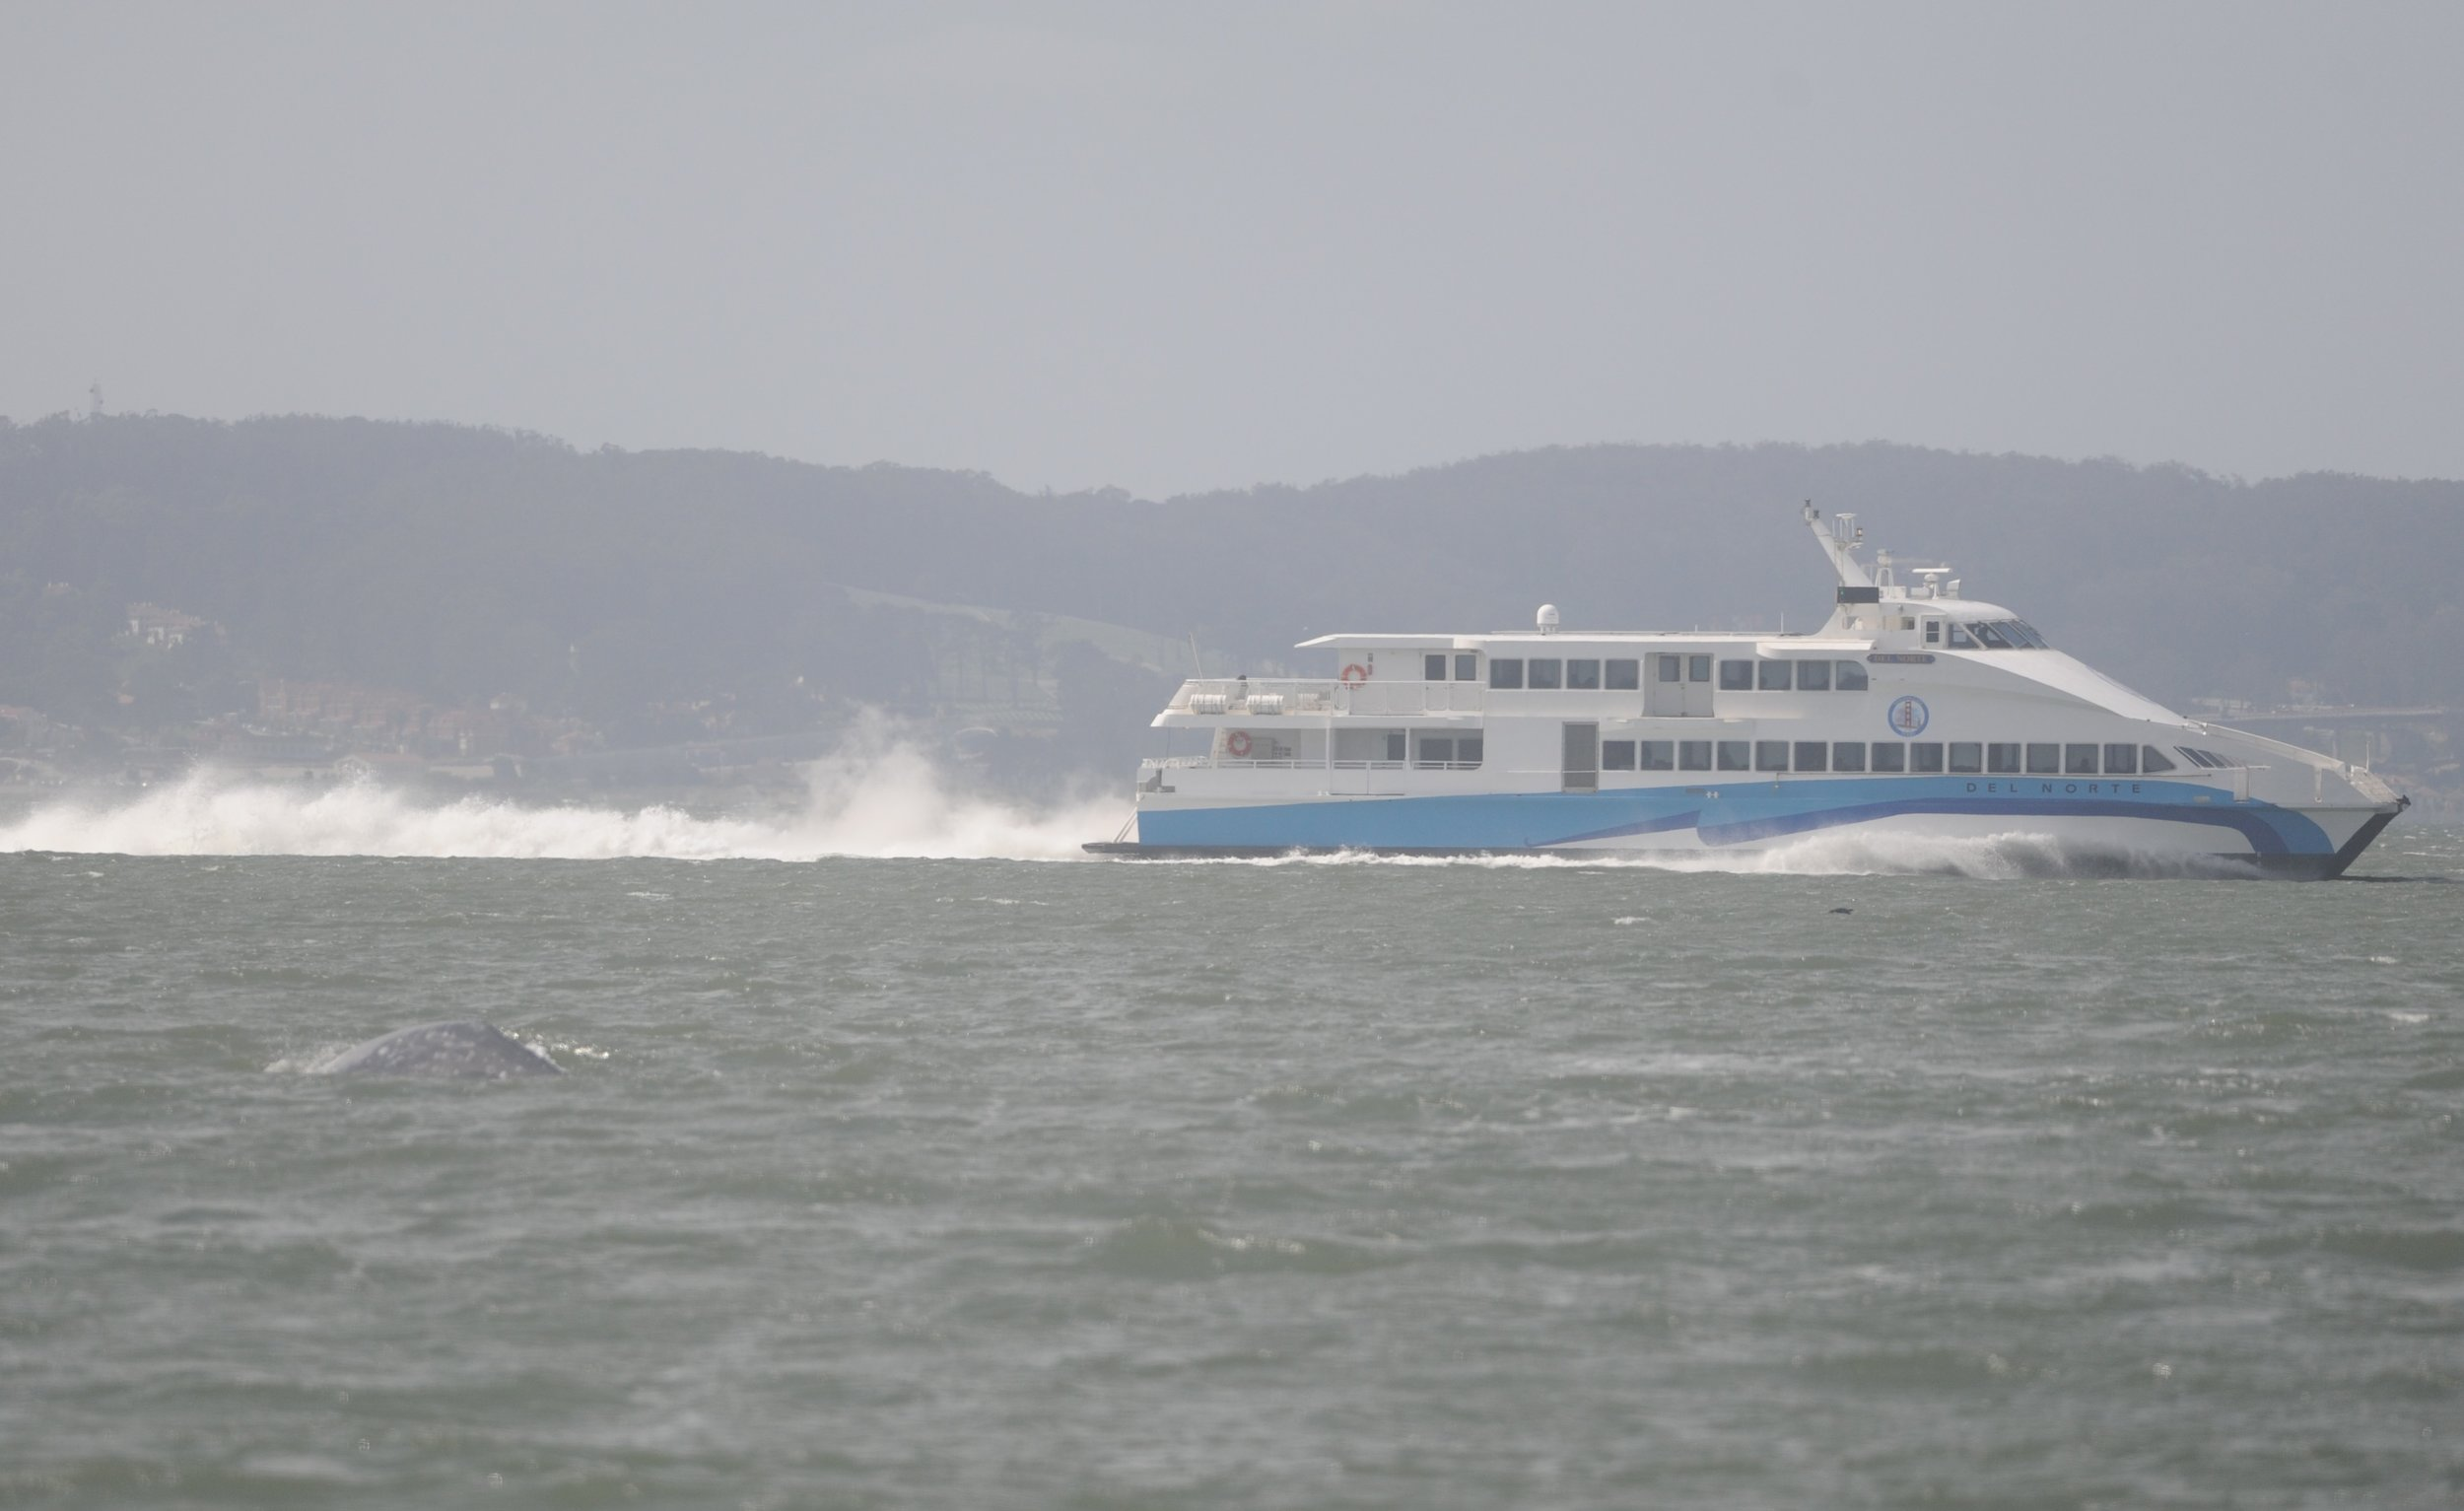 The whale blends in with the water near this ferry.